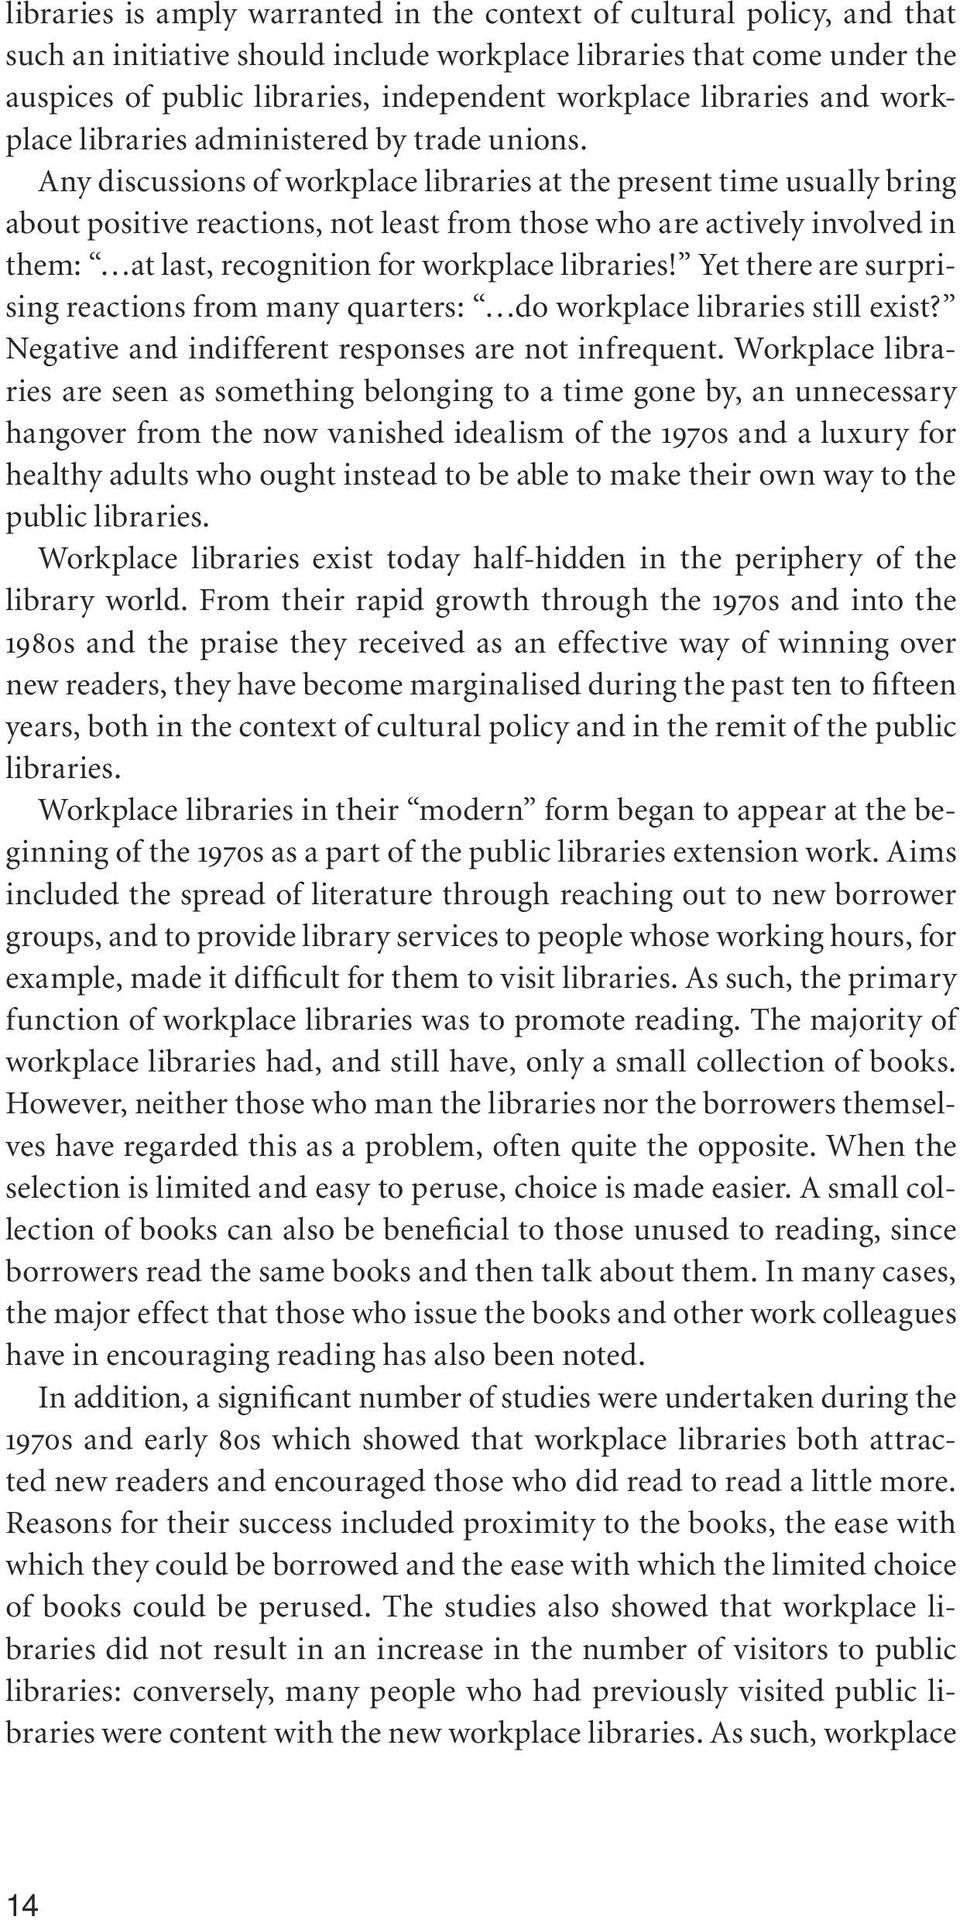 Any discussions of workplace libraries at the present time usually bring about positive reactions, not least from those who are actively involved in them: at last, recognition for workplace libraries!